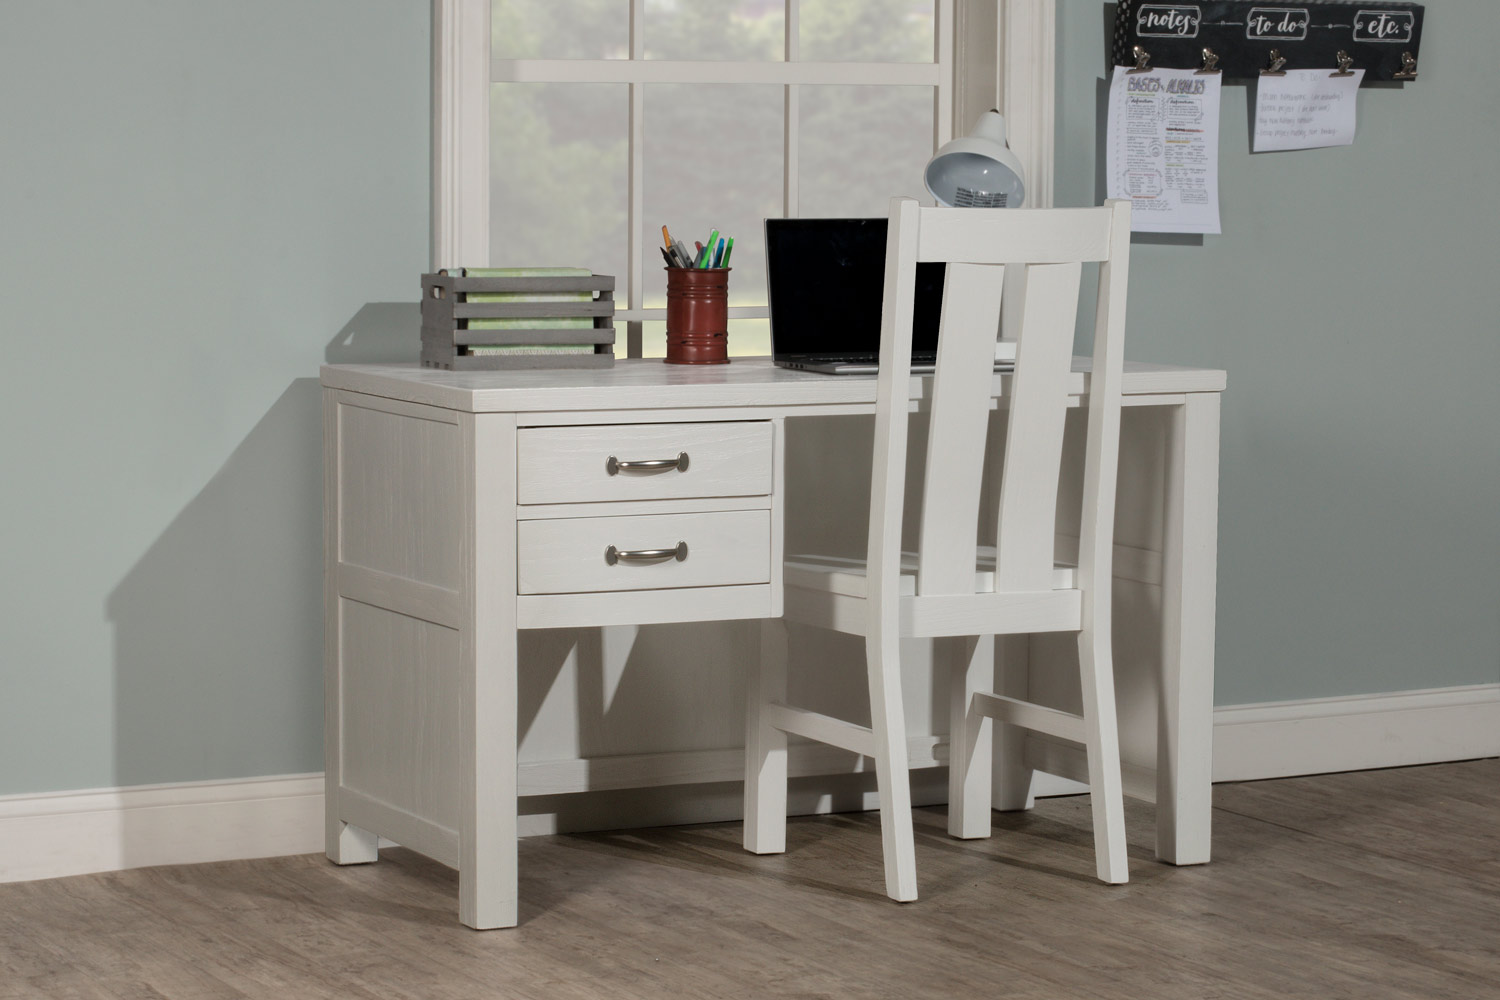 NE Kids Highlands Desk with Chair - White Finish